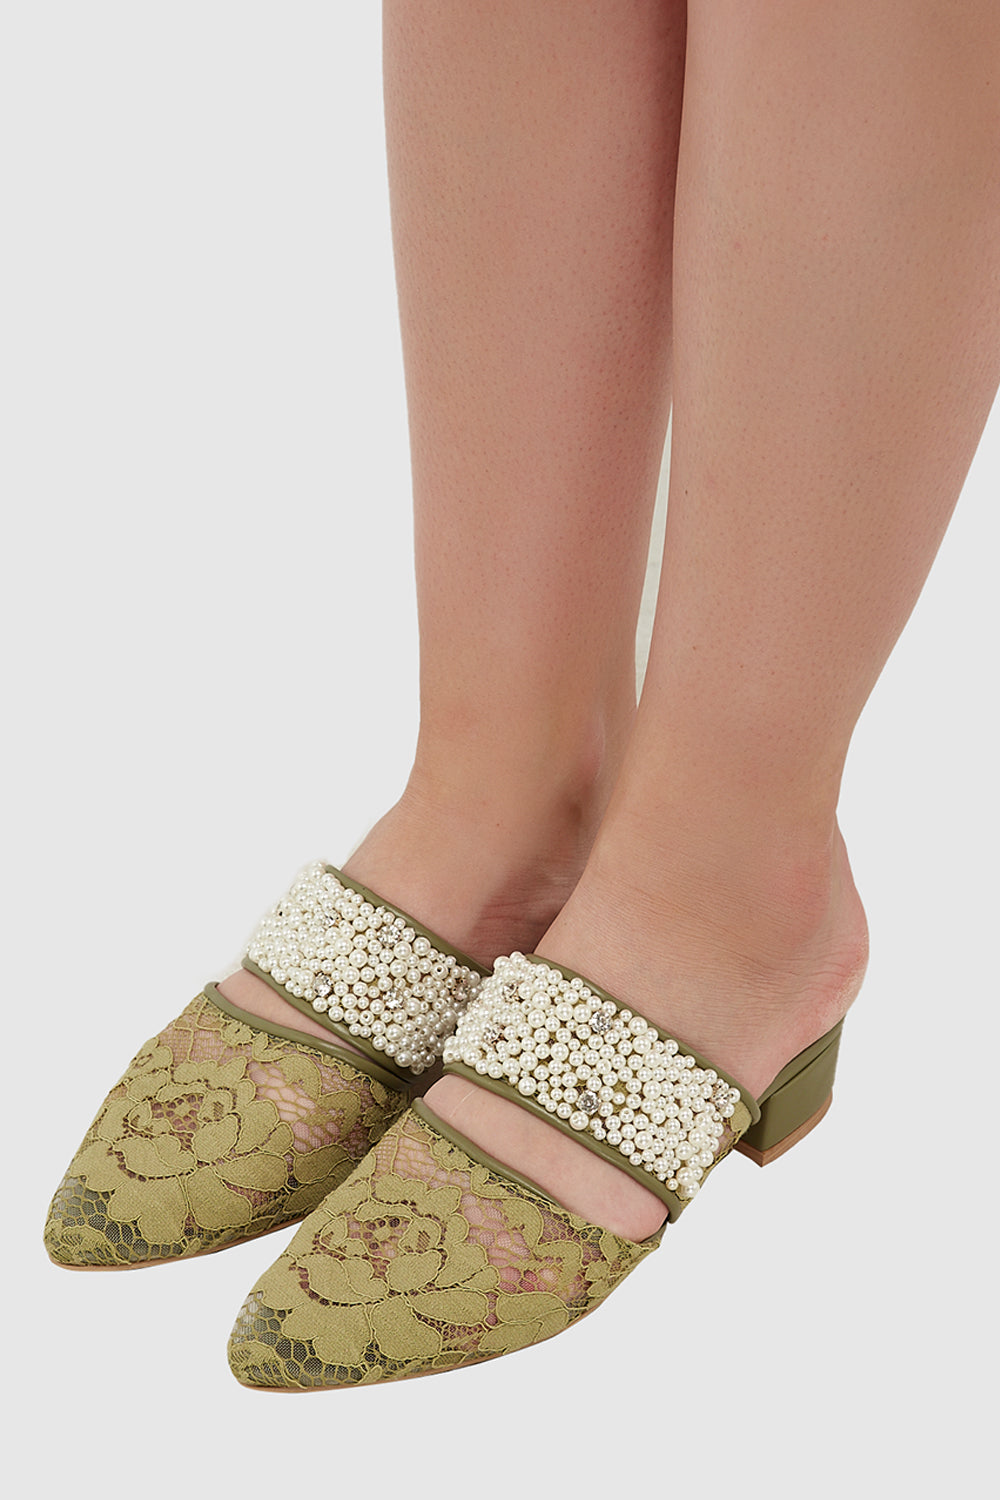 Eve Shoes in Green